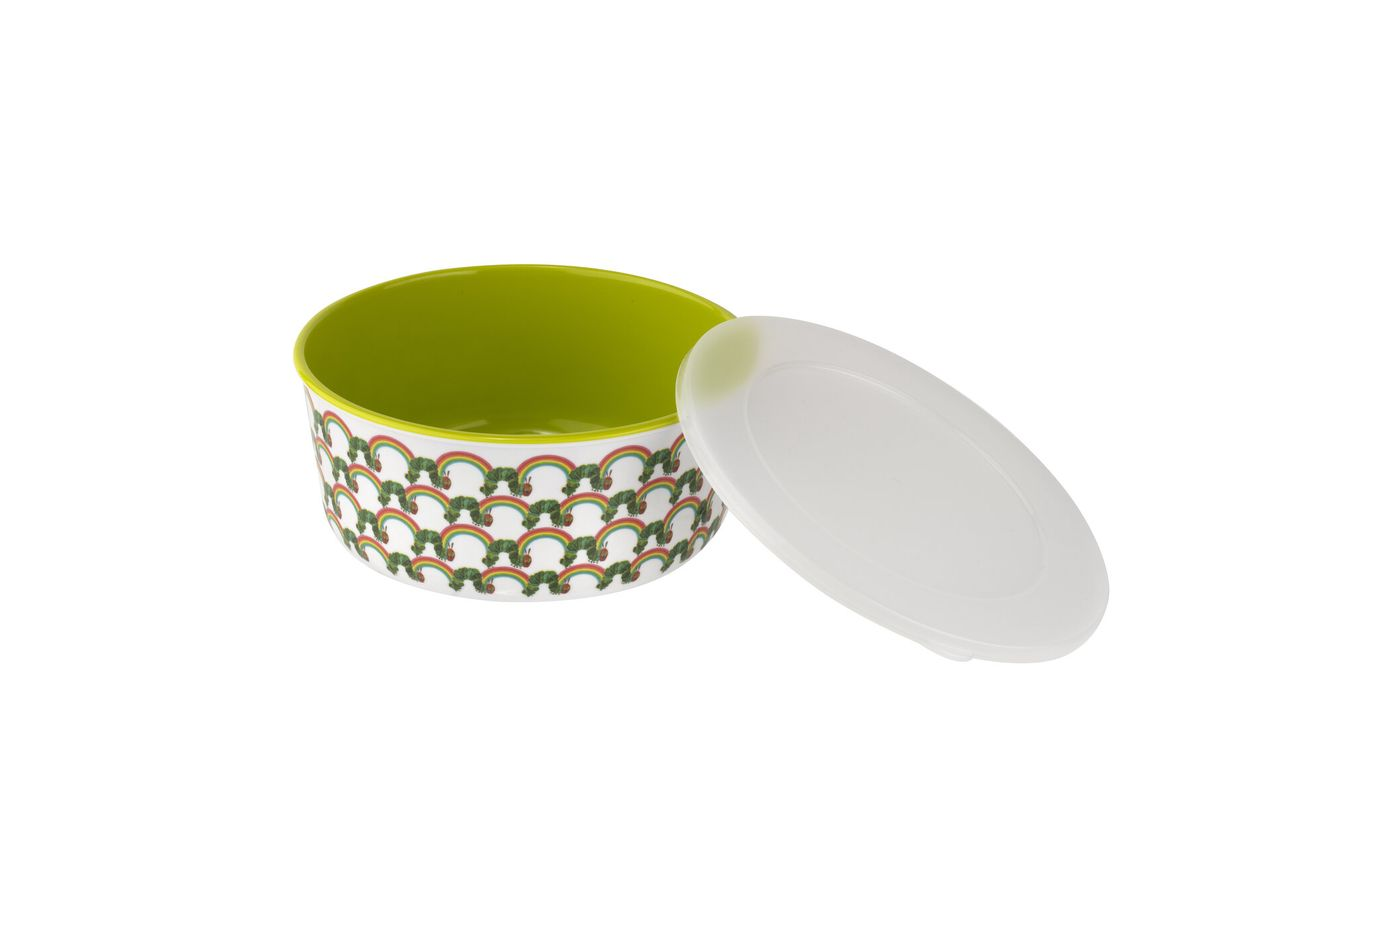 Portmeirion The Very Hungry Caterpillar by Eric Carle Melamine Storage Tubs Set of 2 thumb 4